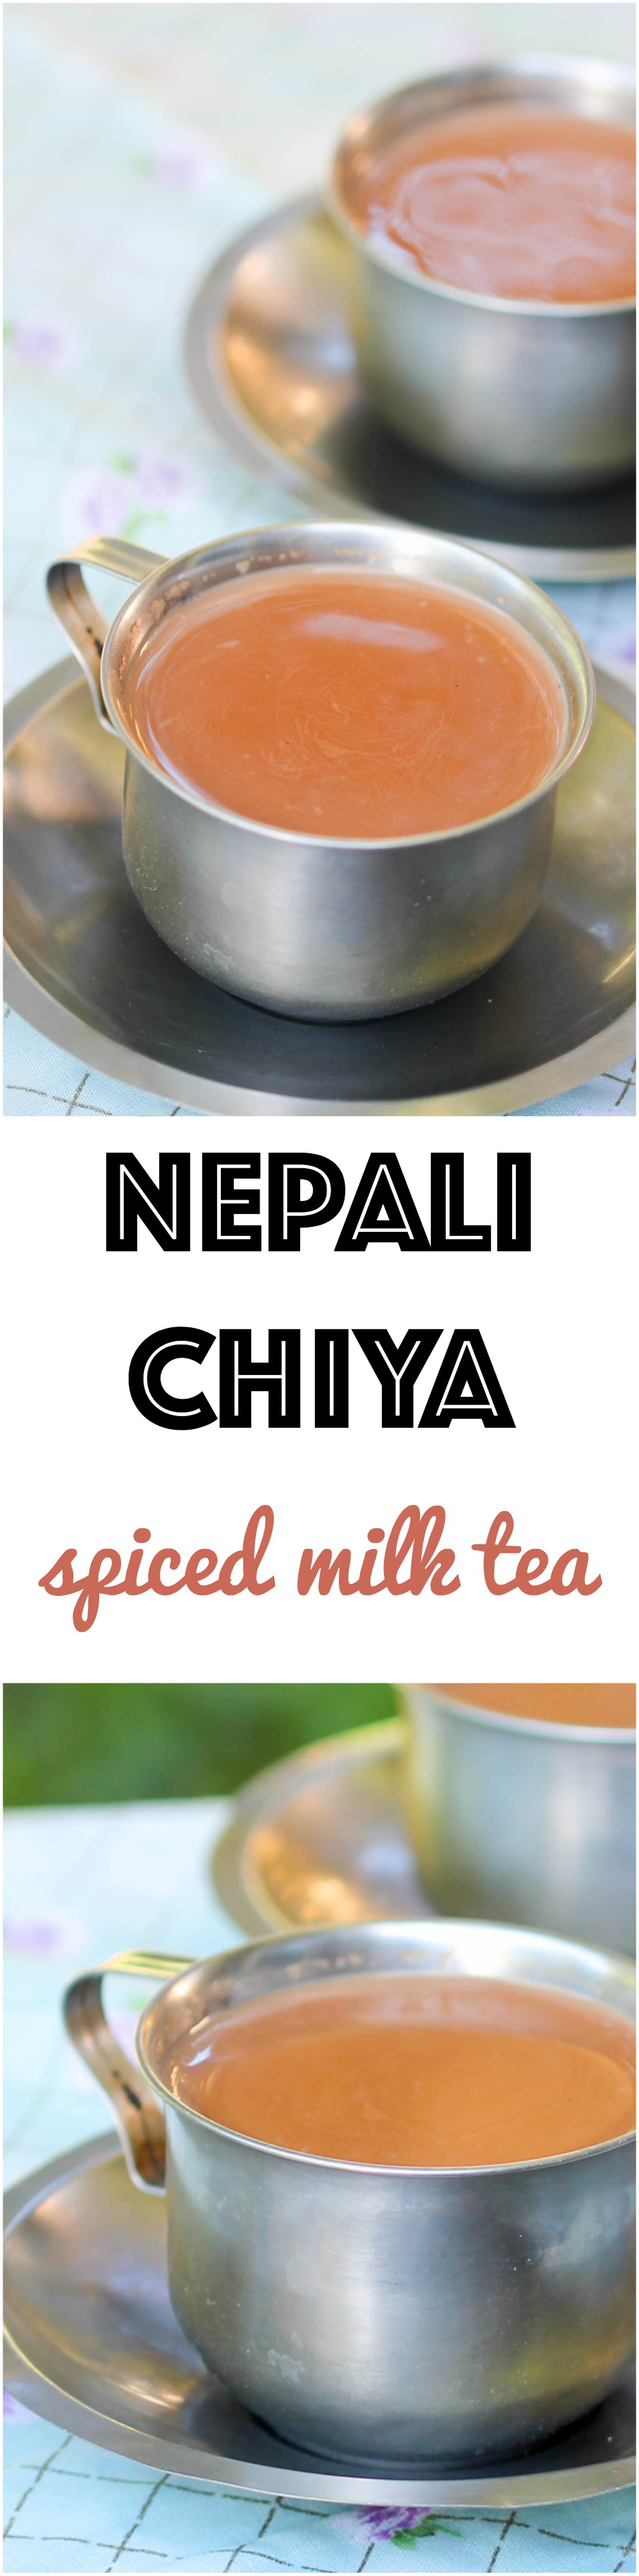 Nepali Chiya is a milk-based spiced tea enjoyed by most Nepali. It is flexible to meet different lifestyles and can be be adjusted to serve yourself or a large crowd.